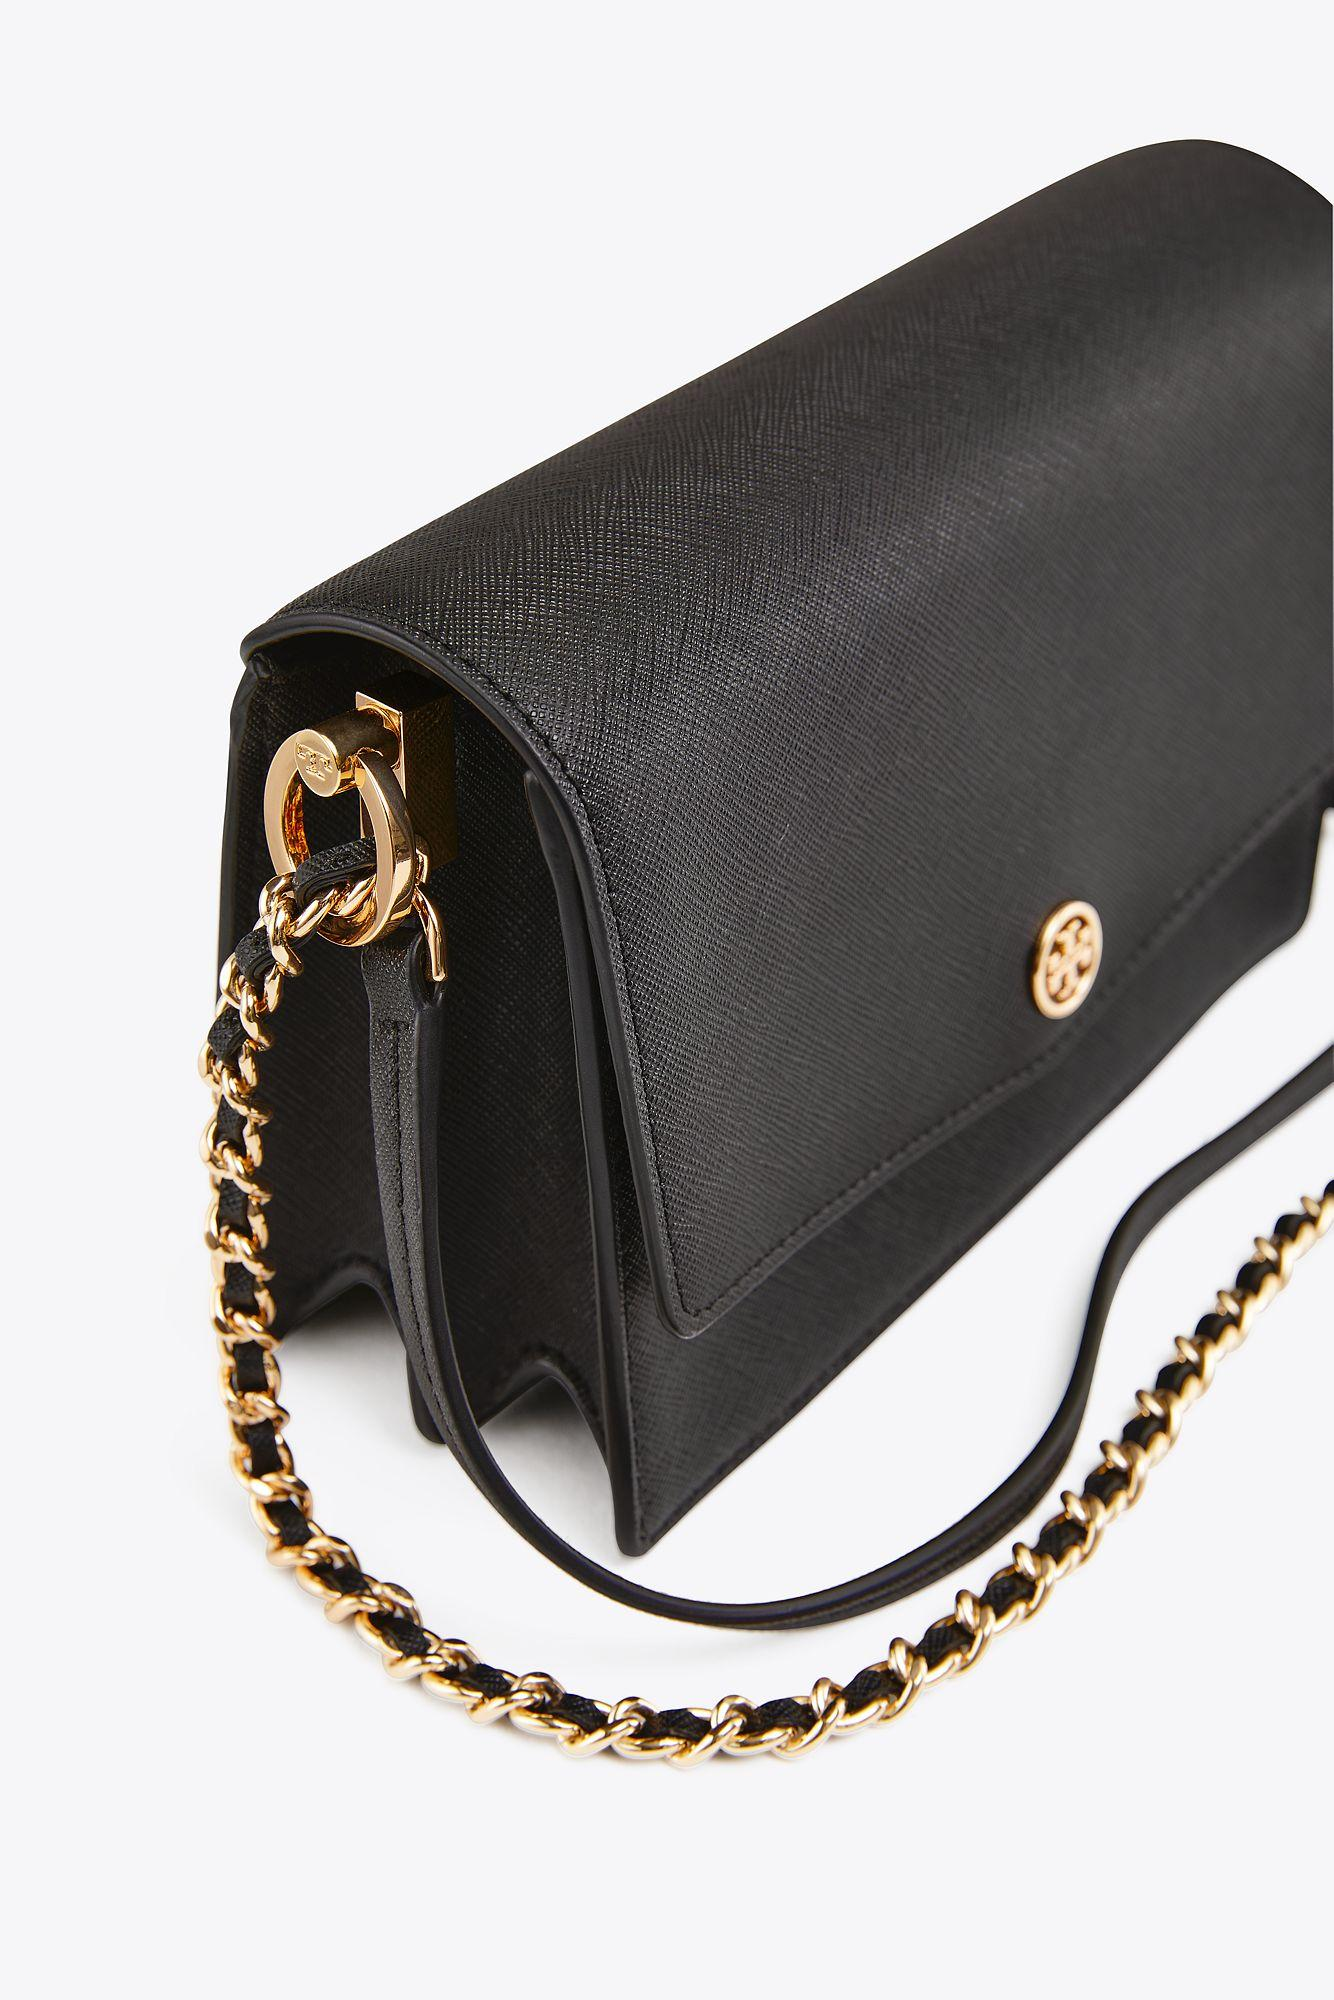 4000d2cd641 Tory Burch Robinson Convertible Mini Shoulder Bag in Black - Save 38 ...